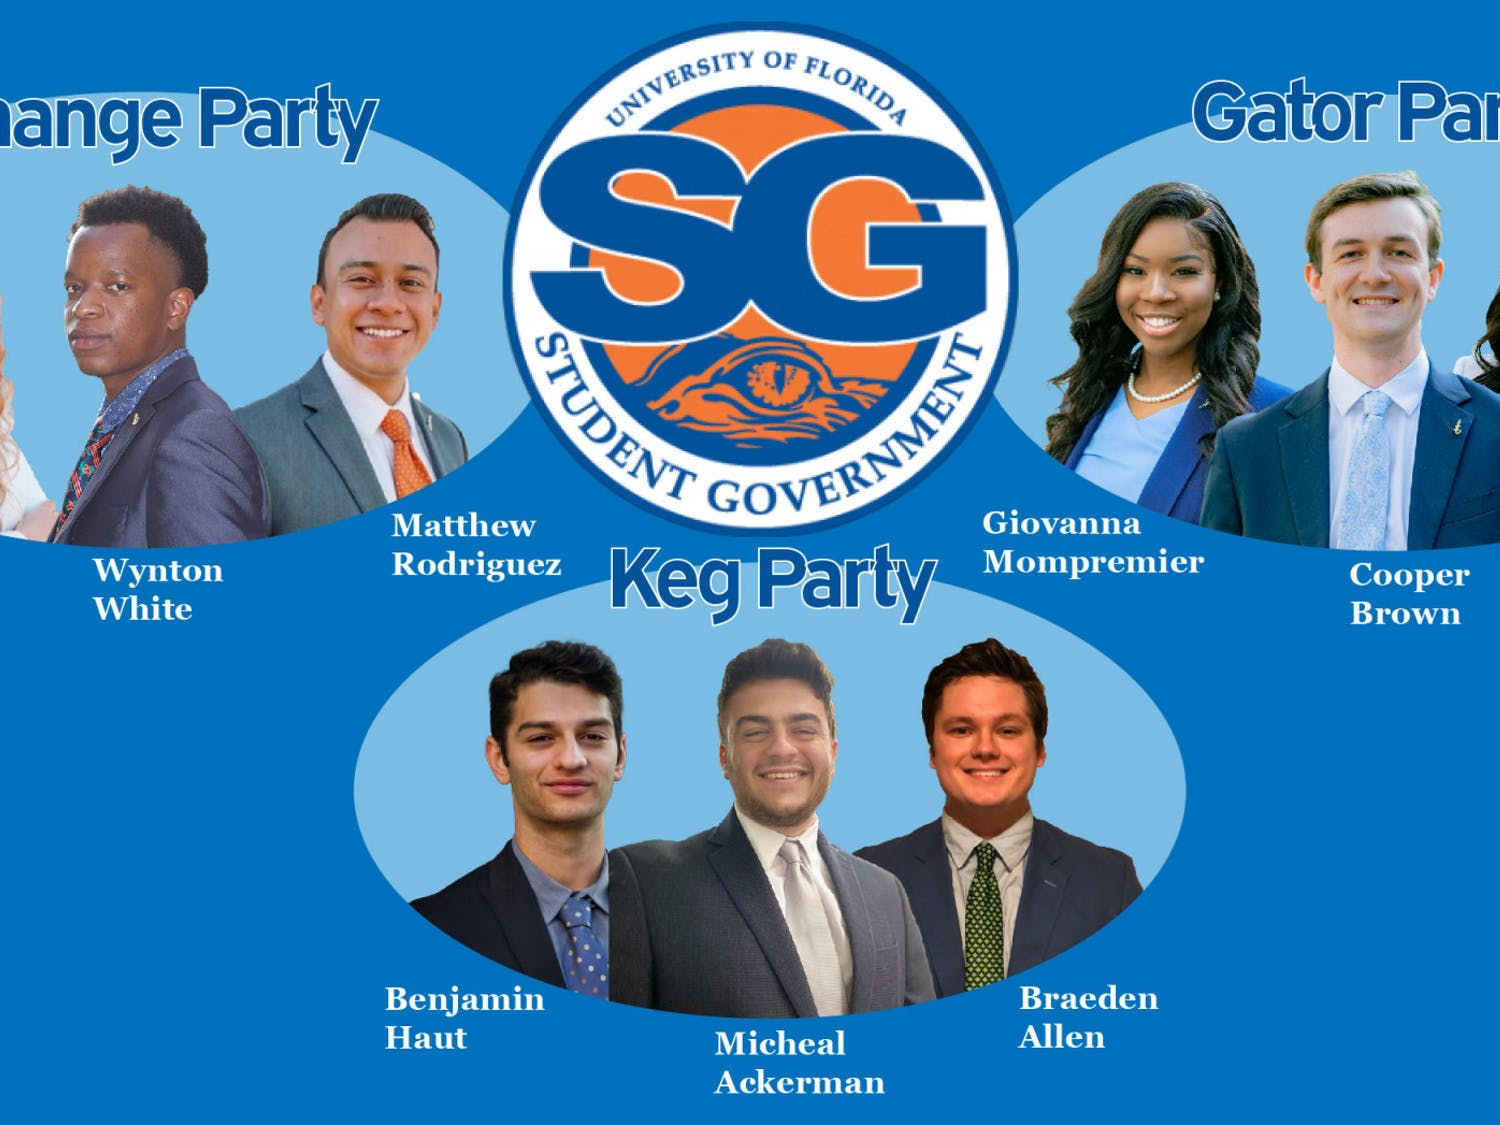 Executive candidates for Change Party, Gator Party and Keg Party